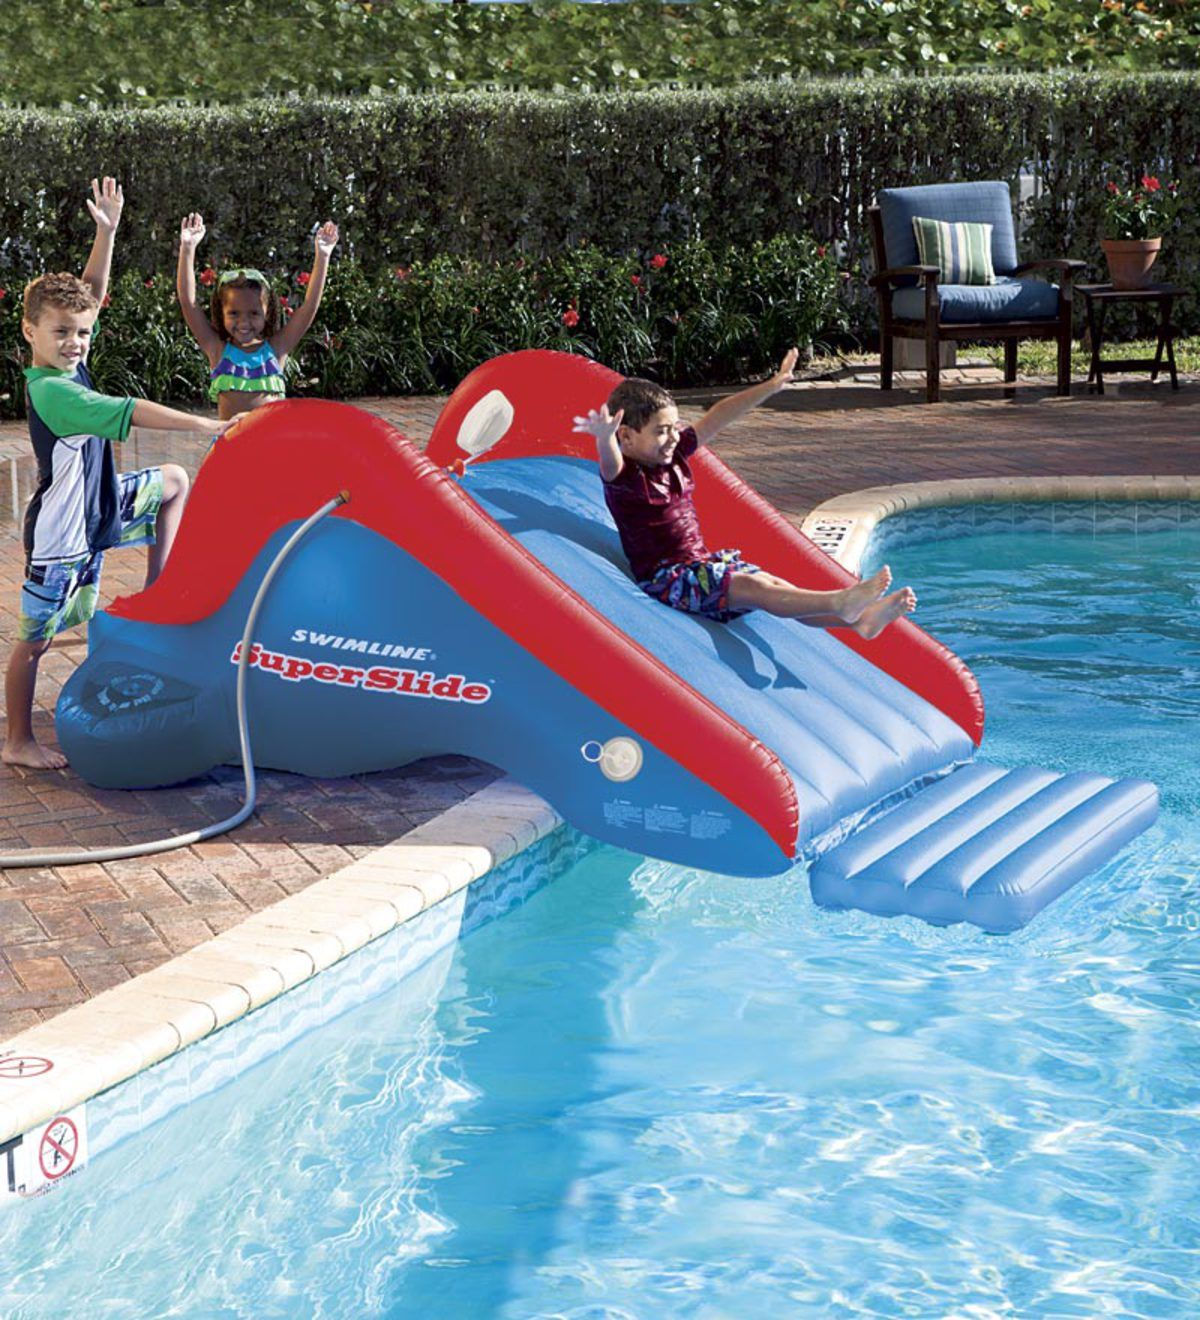 Inflatable Super Backyard Water Slide 12 Ages Hearthsong Pool Floats For Kids Swimming Pool Toys Swimming Pool Games